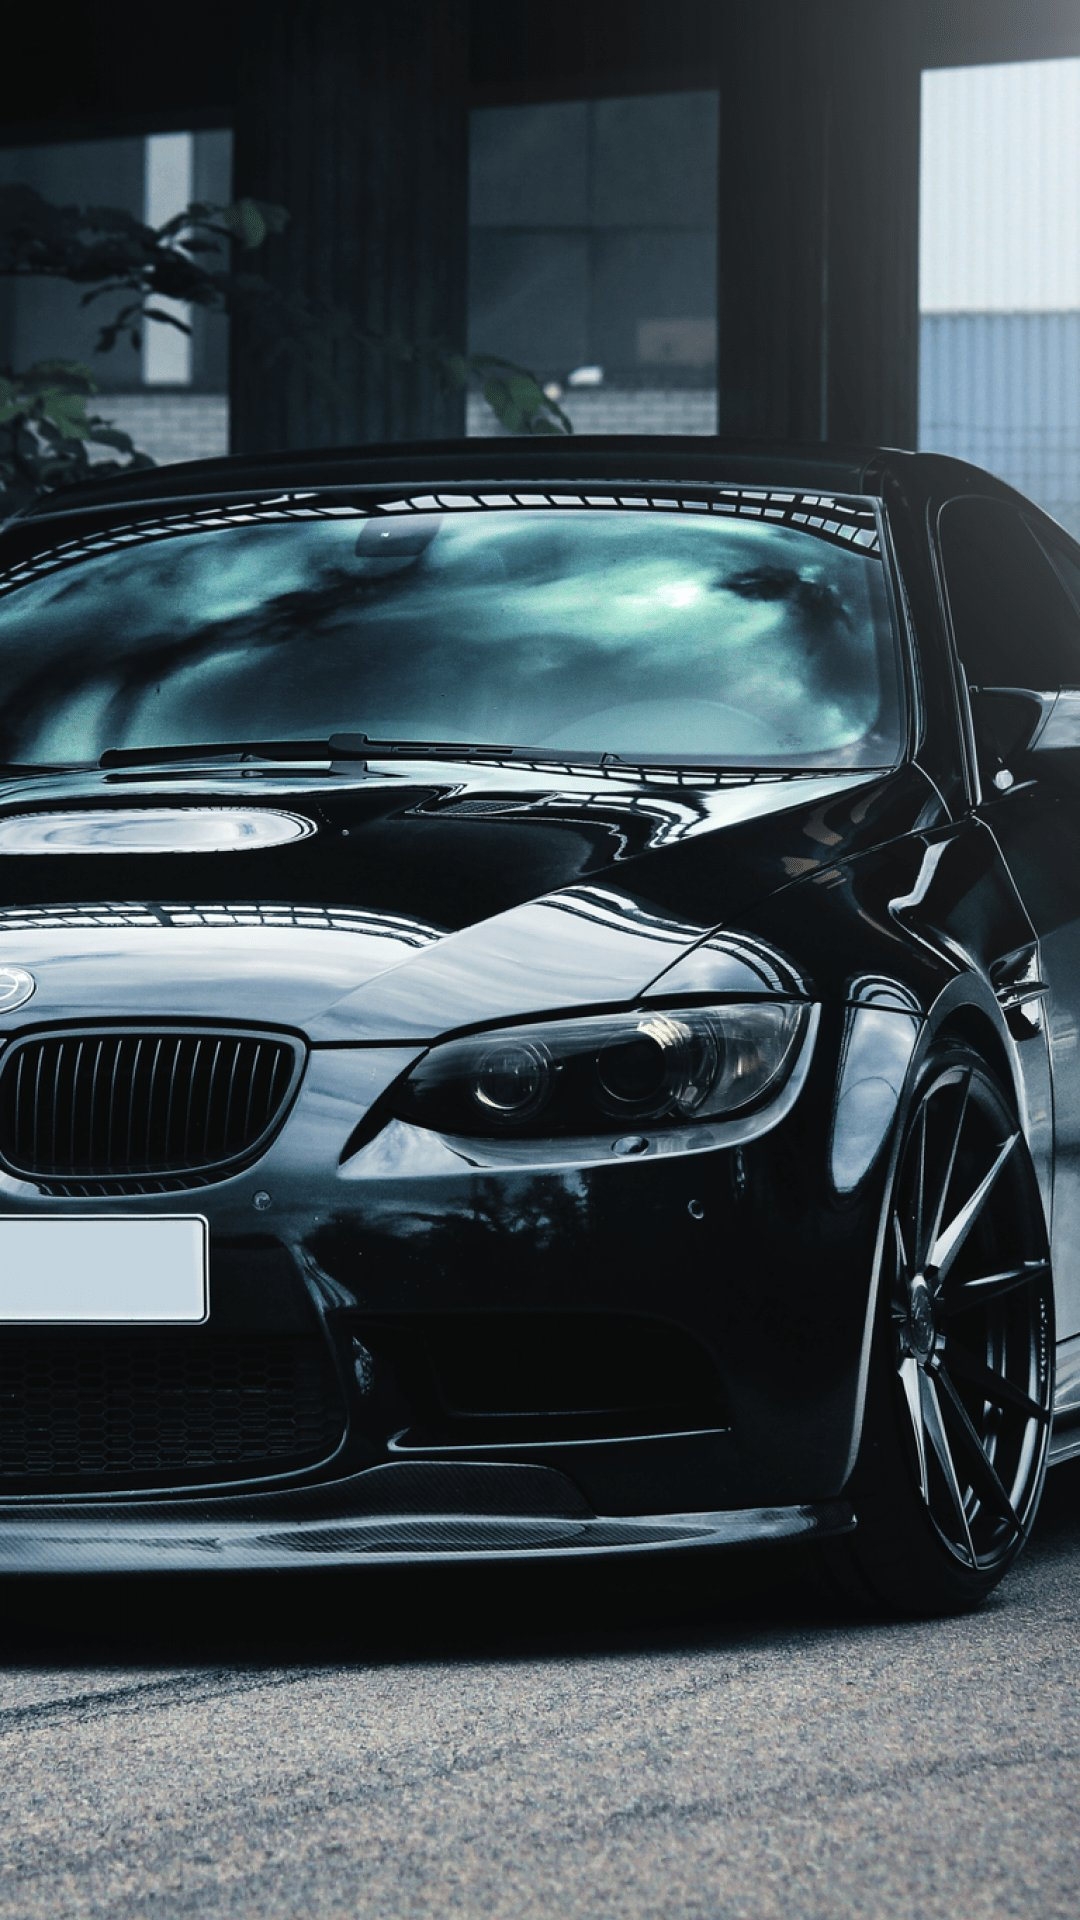 Latest Black Bmw Wallpapers Wallpaper Cave Free Download